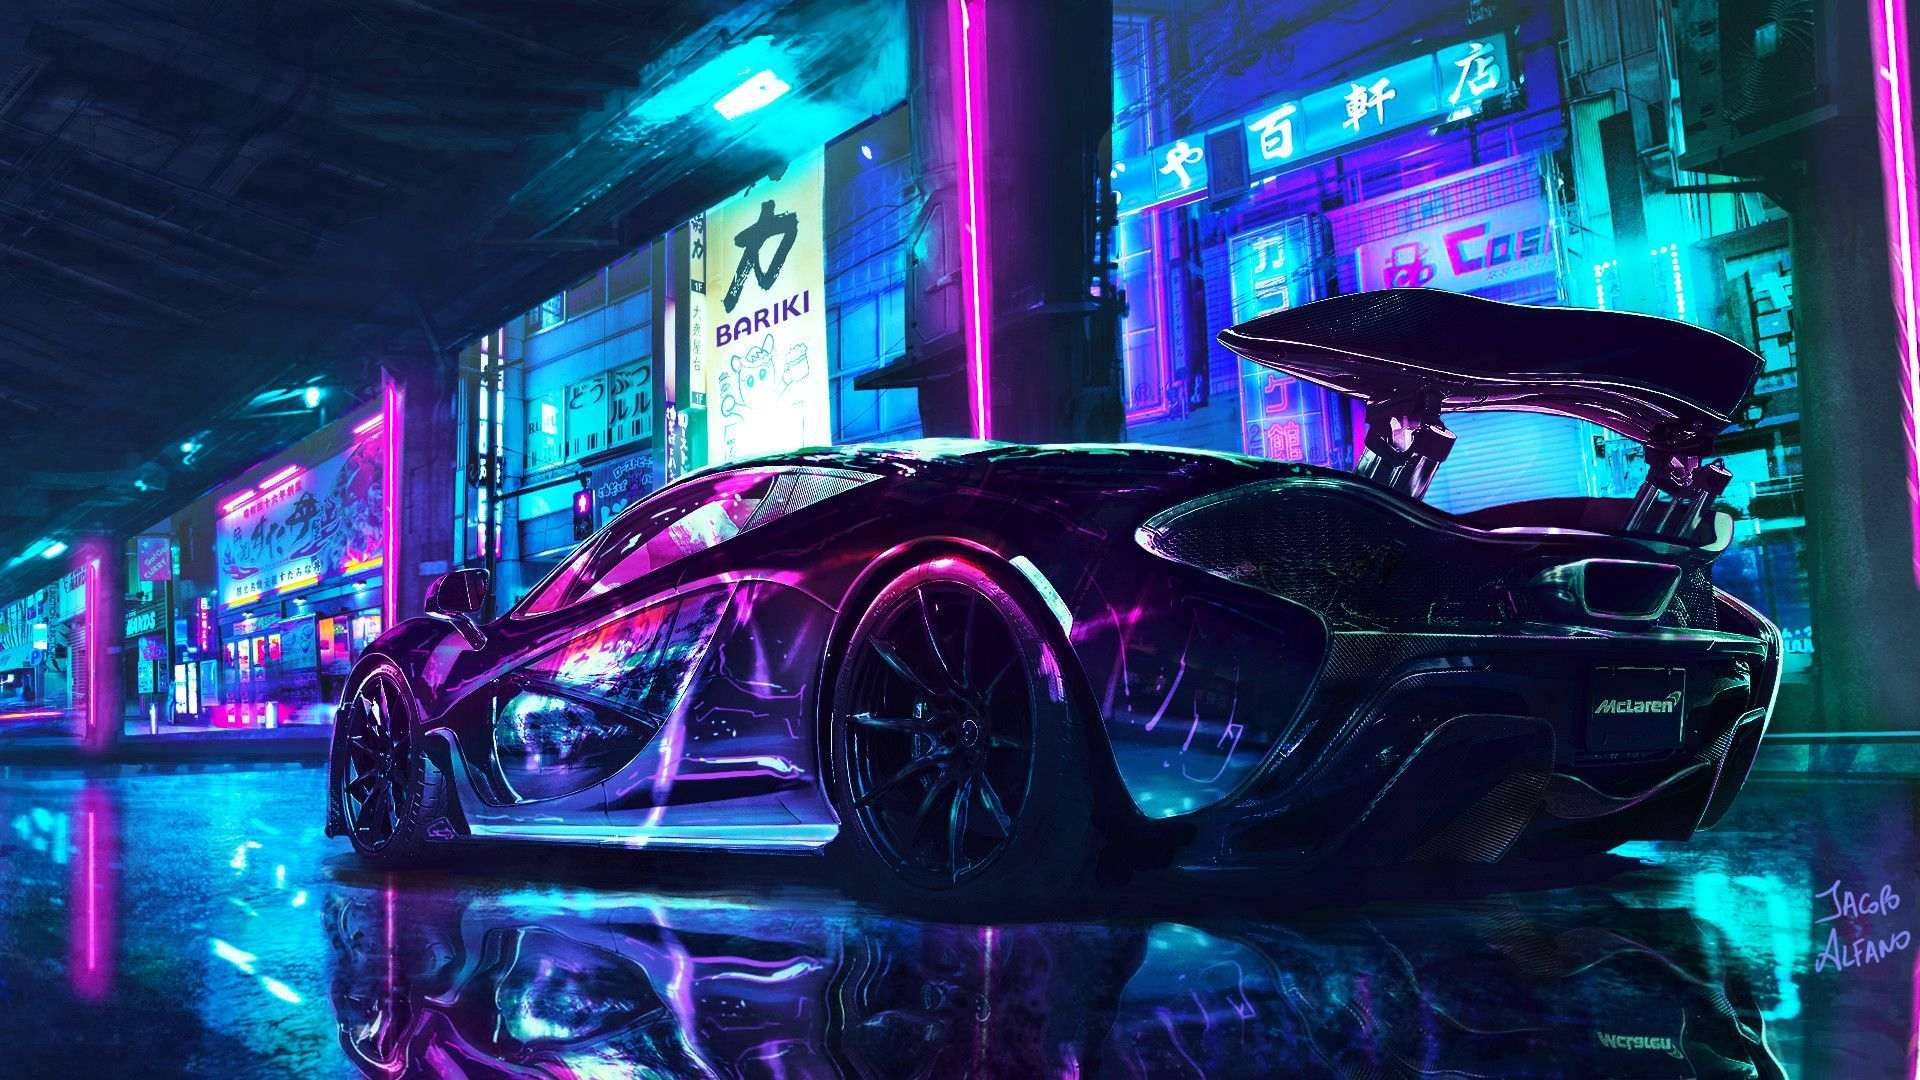 Cyberpunk 2077: how to get one of the best cars in the game for free